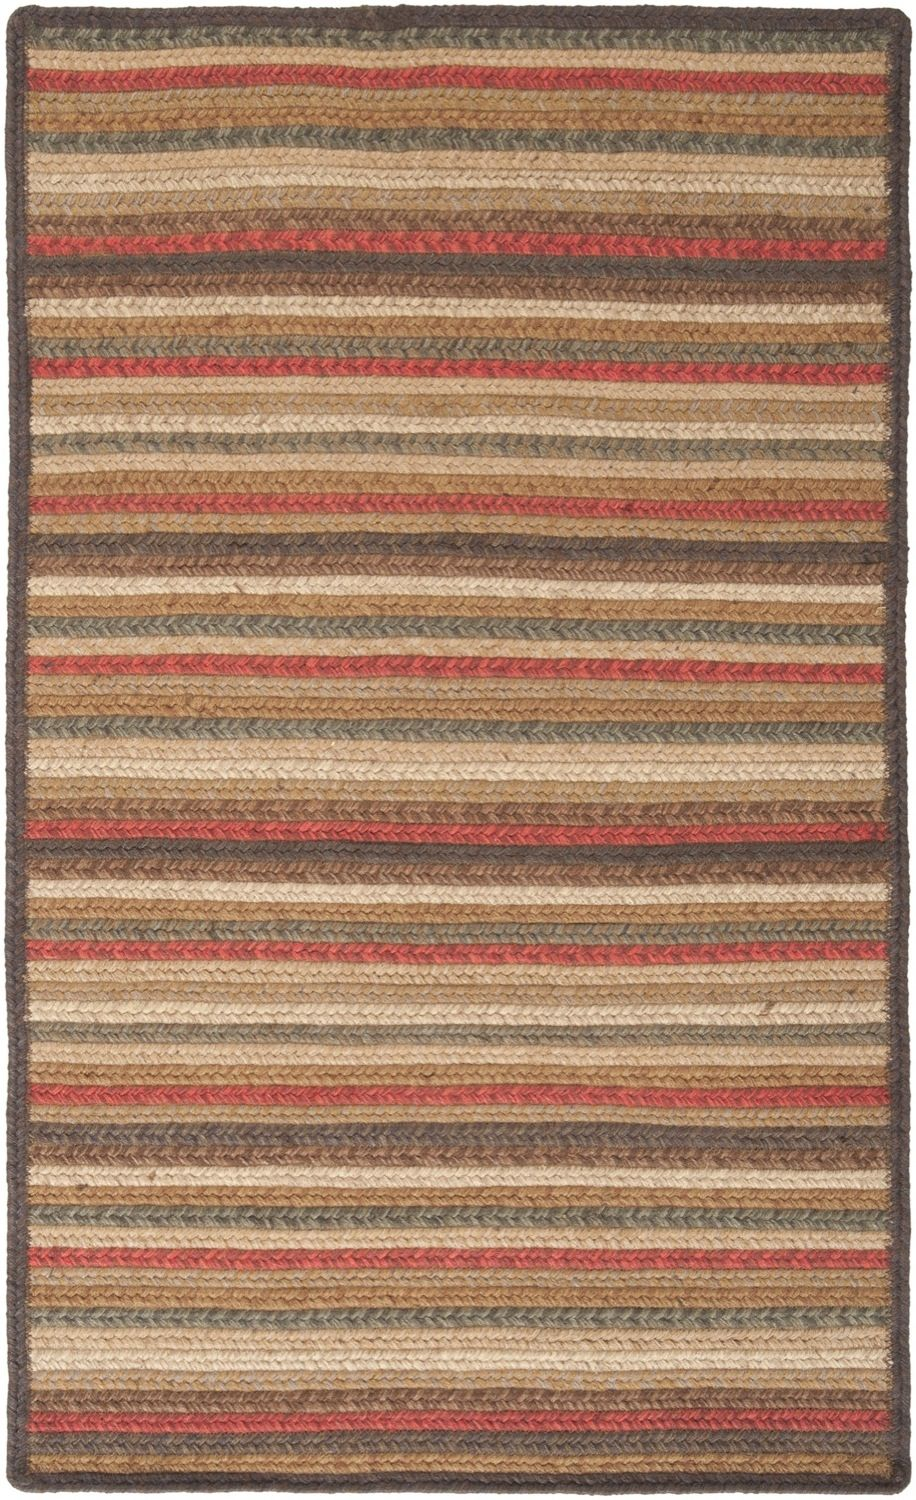 surya king george braided area rug collection